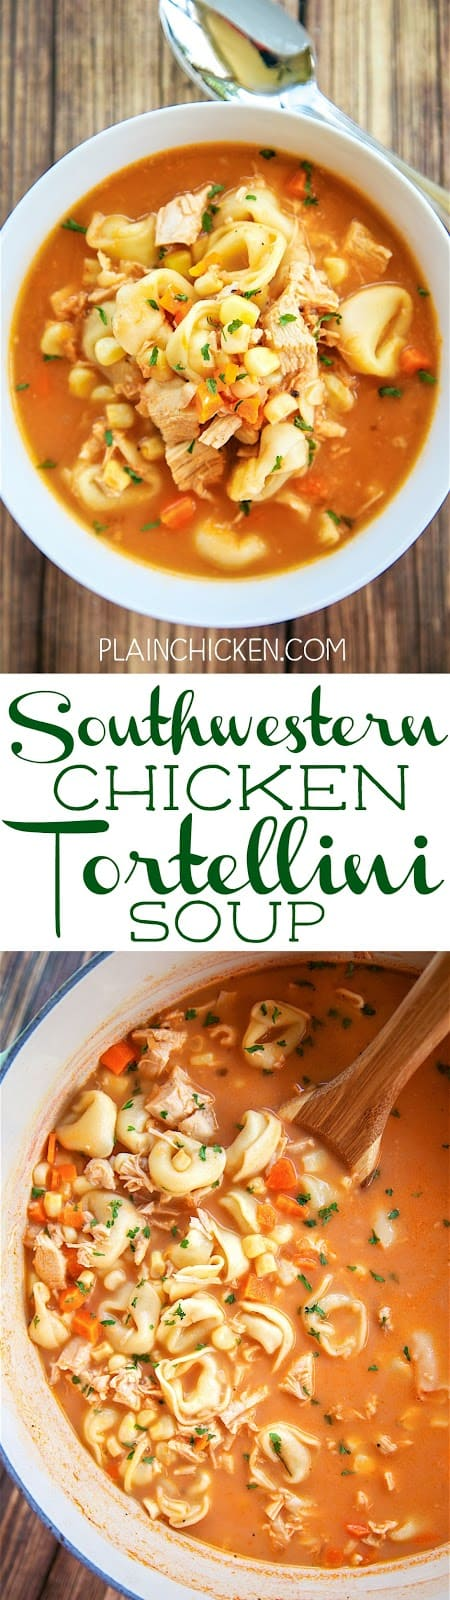 Southwestern Chicken Tortellini Soup - ready in under 30 minutes!! Chicken broth, salsa, carrots, corn, onion, frozen cheese tortellini and evaporated milk. Very hearty soup. Great weeknight meal. Everyone loved this! We ate it for dinner and reheated for lunch the next day. Delicious!